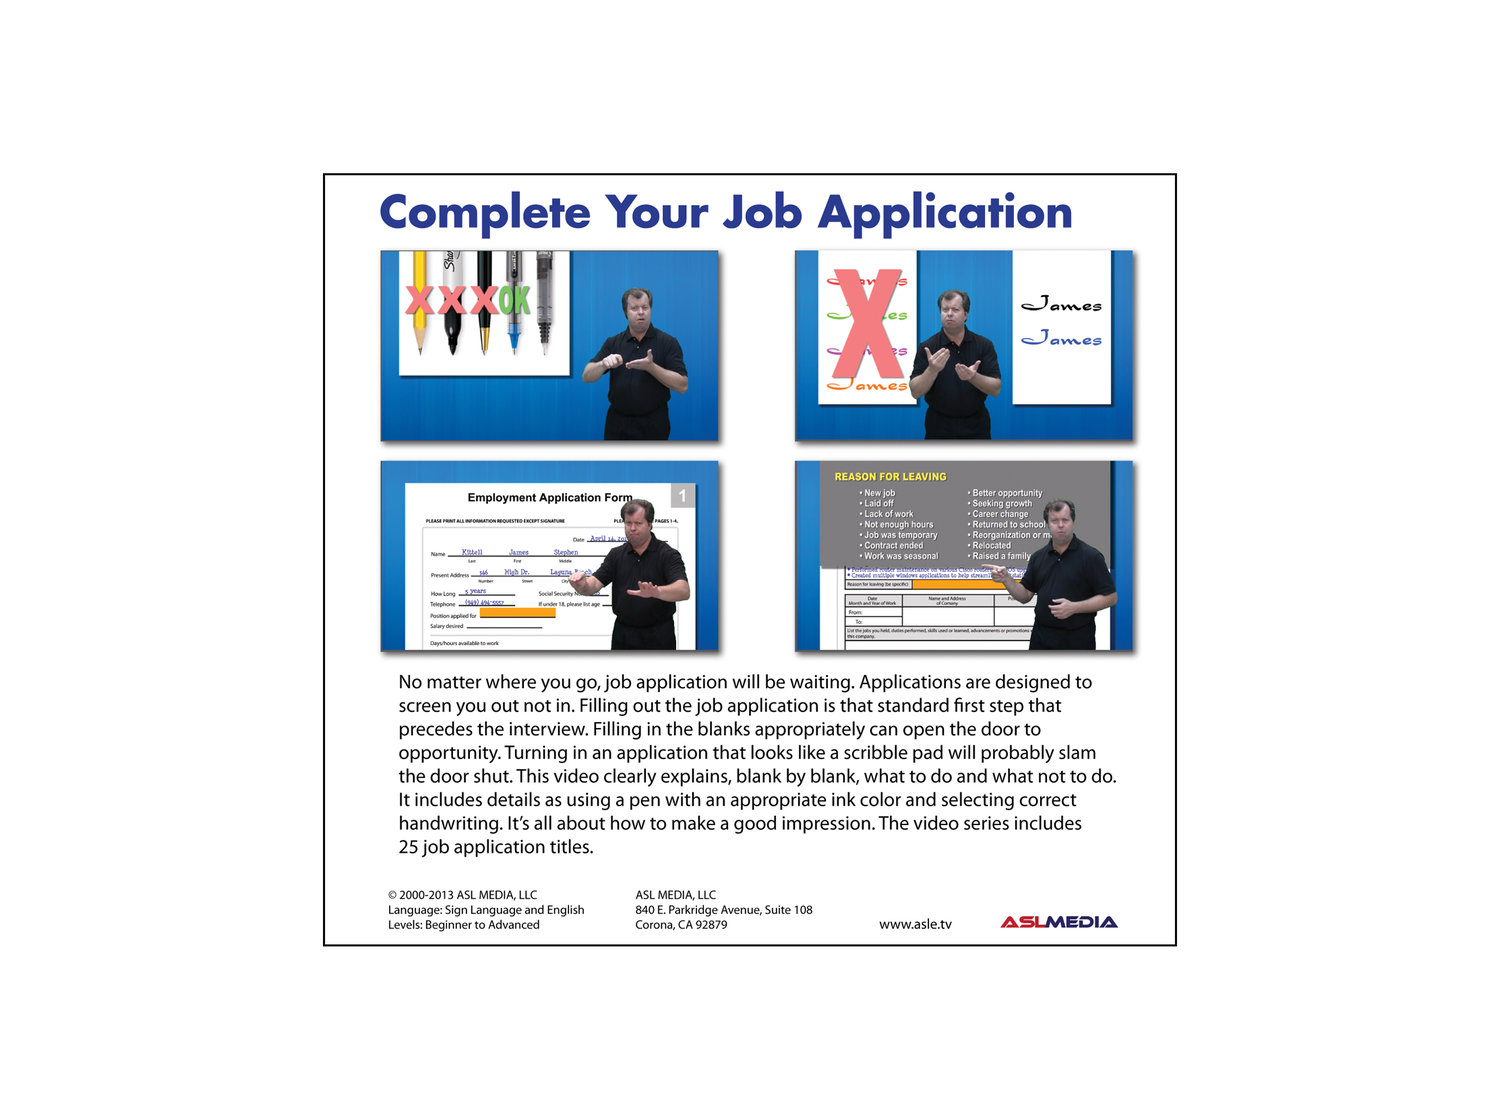 job success complete your job application 40 dvd discs first job success complete your job application 40 dvd discs first version